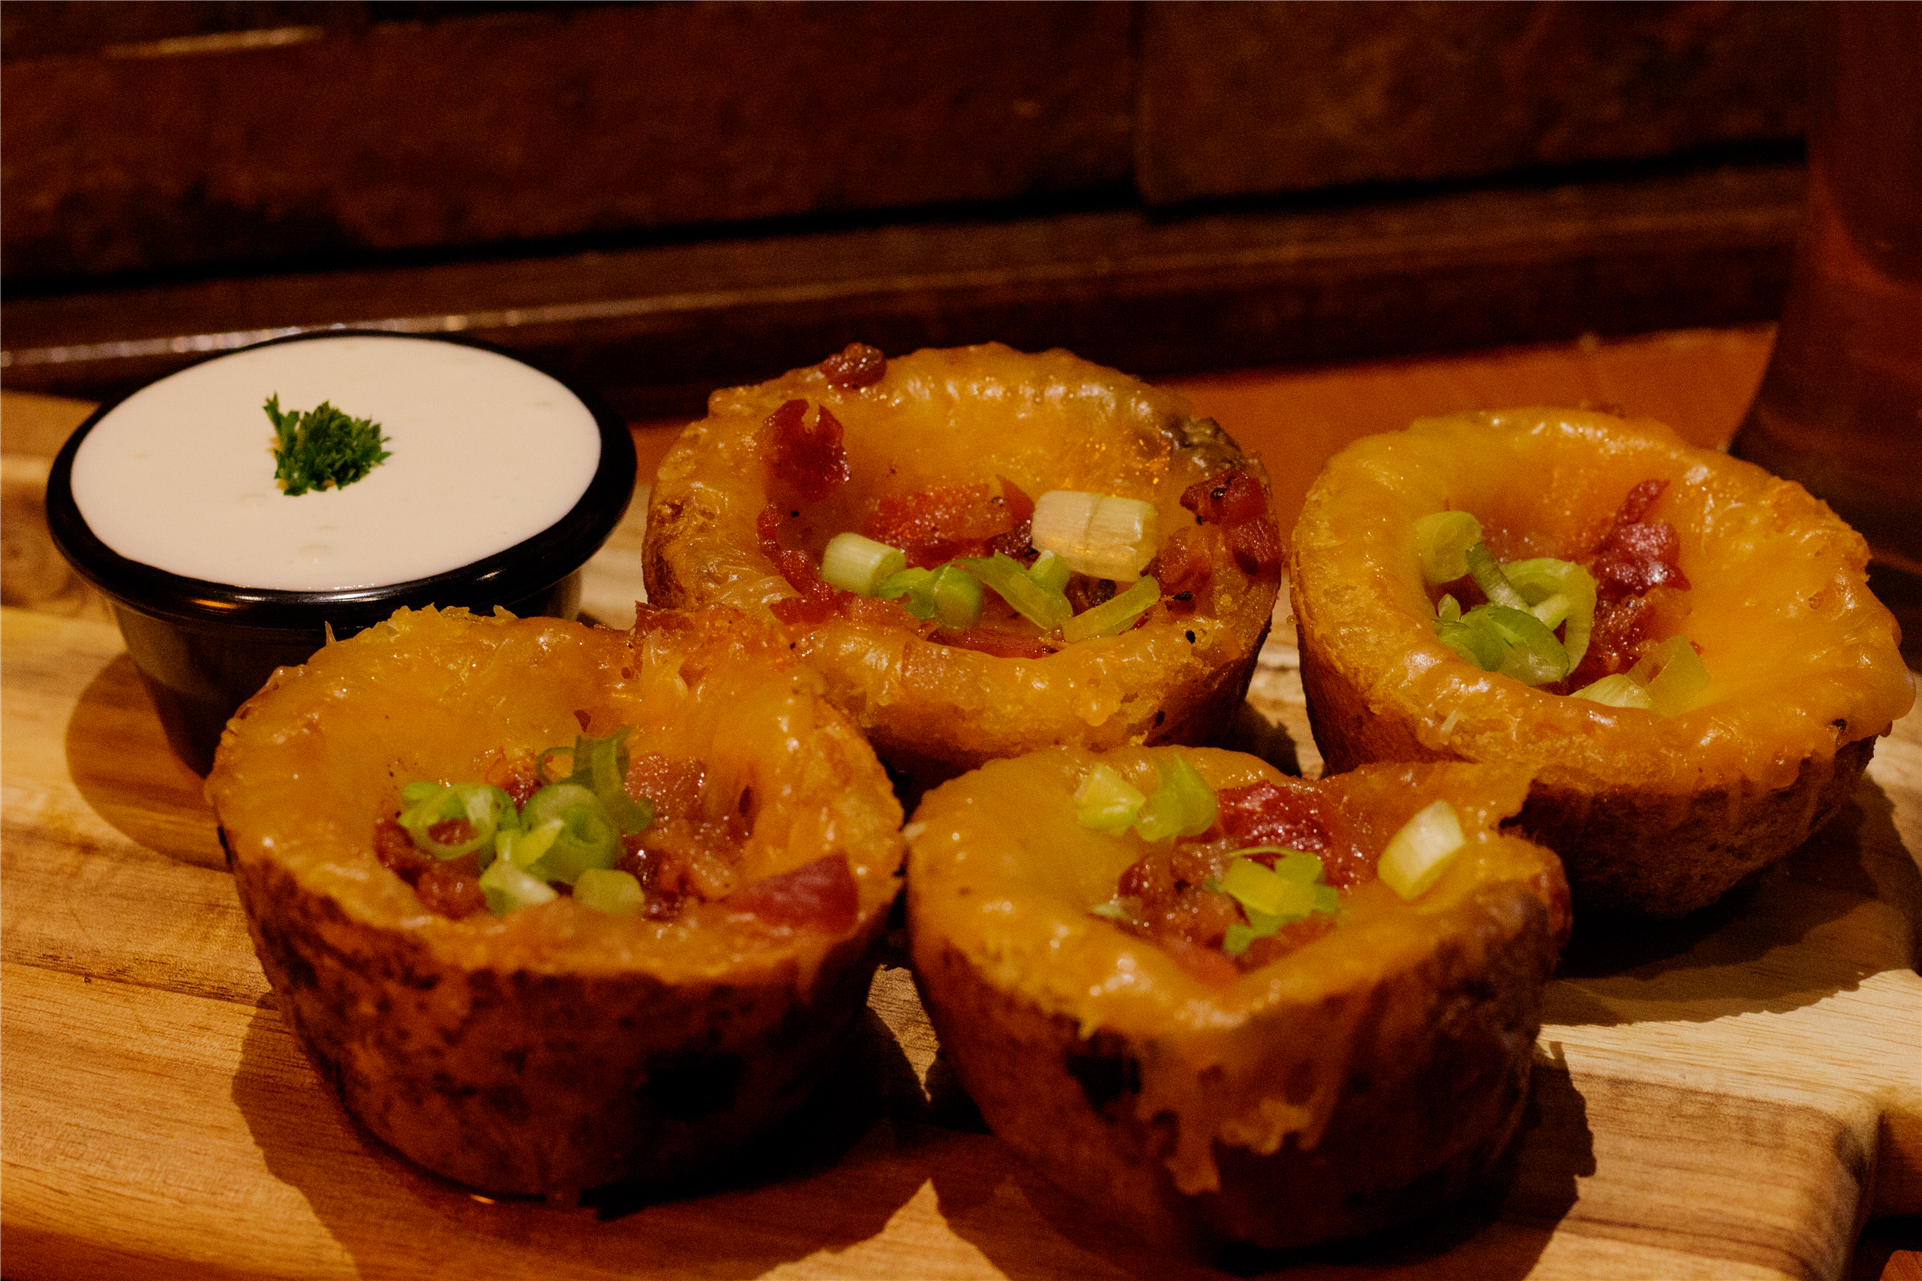 potato skins with bacon and melted cheese, with a side of sour cream